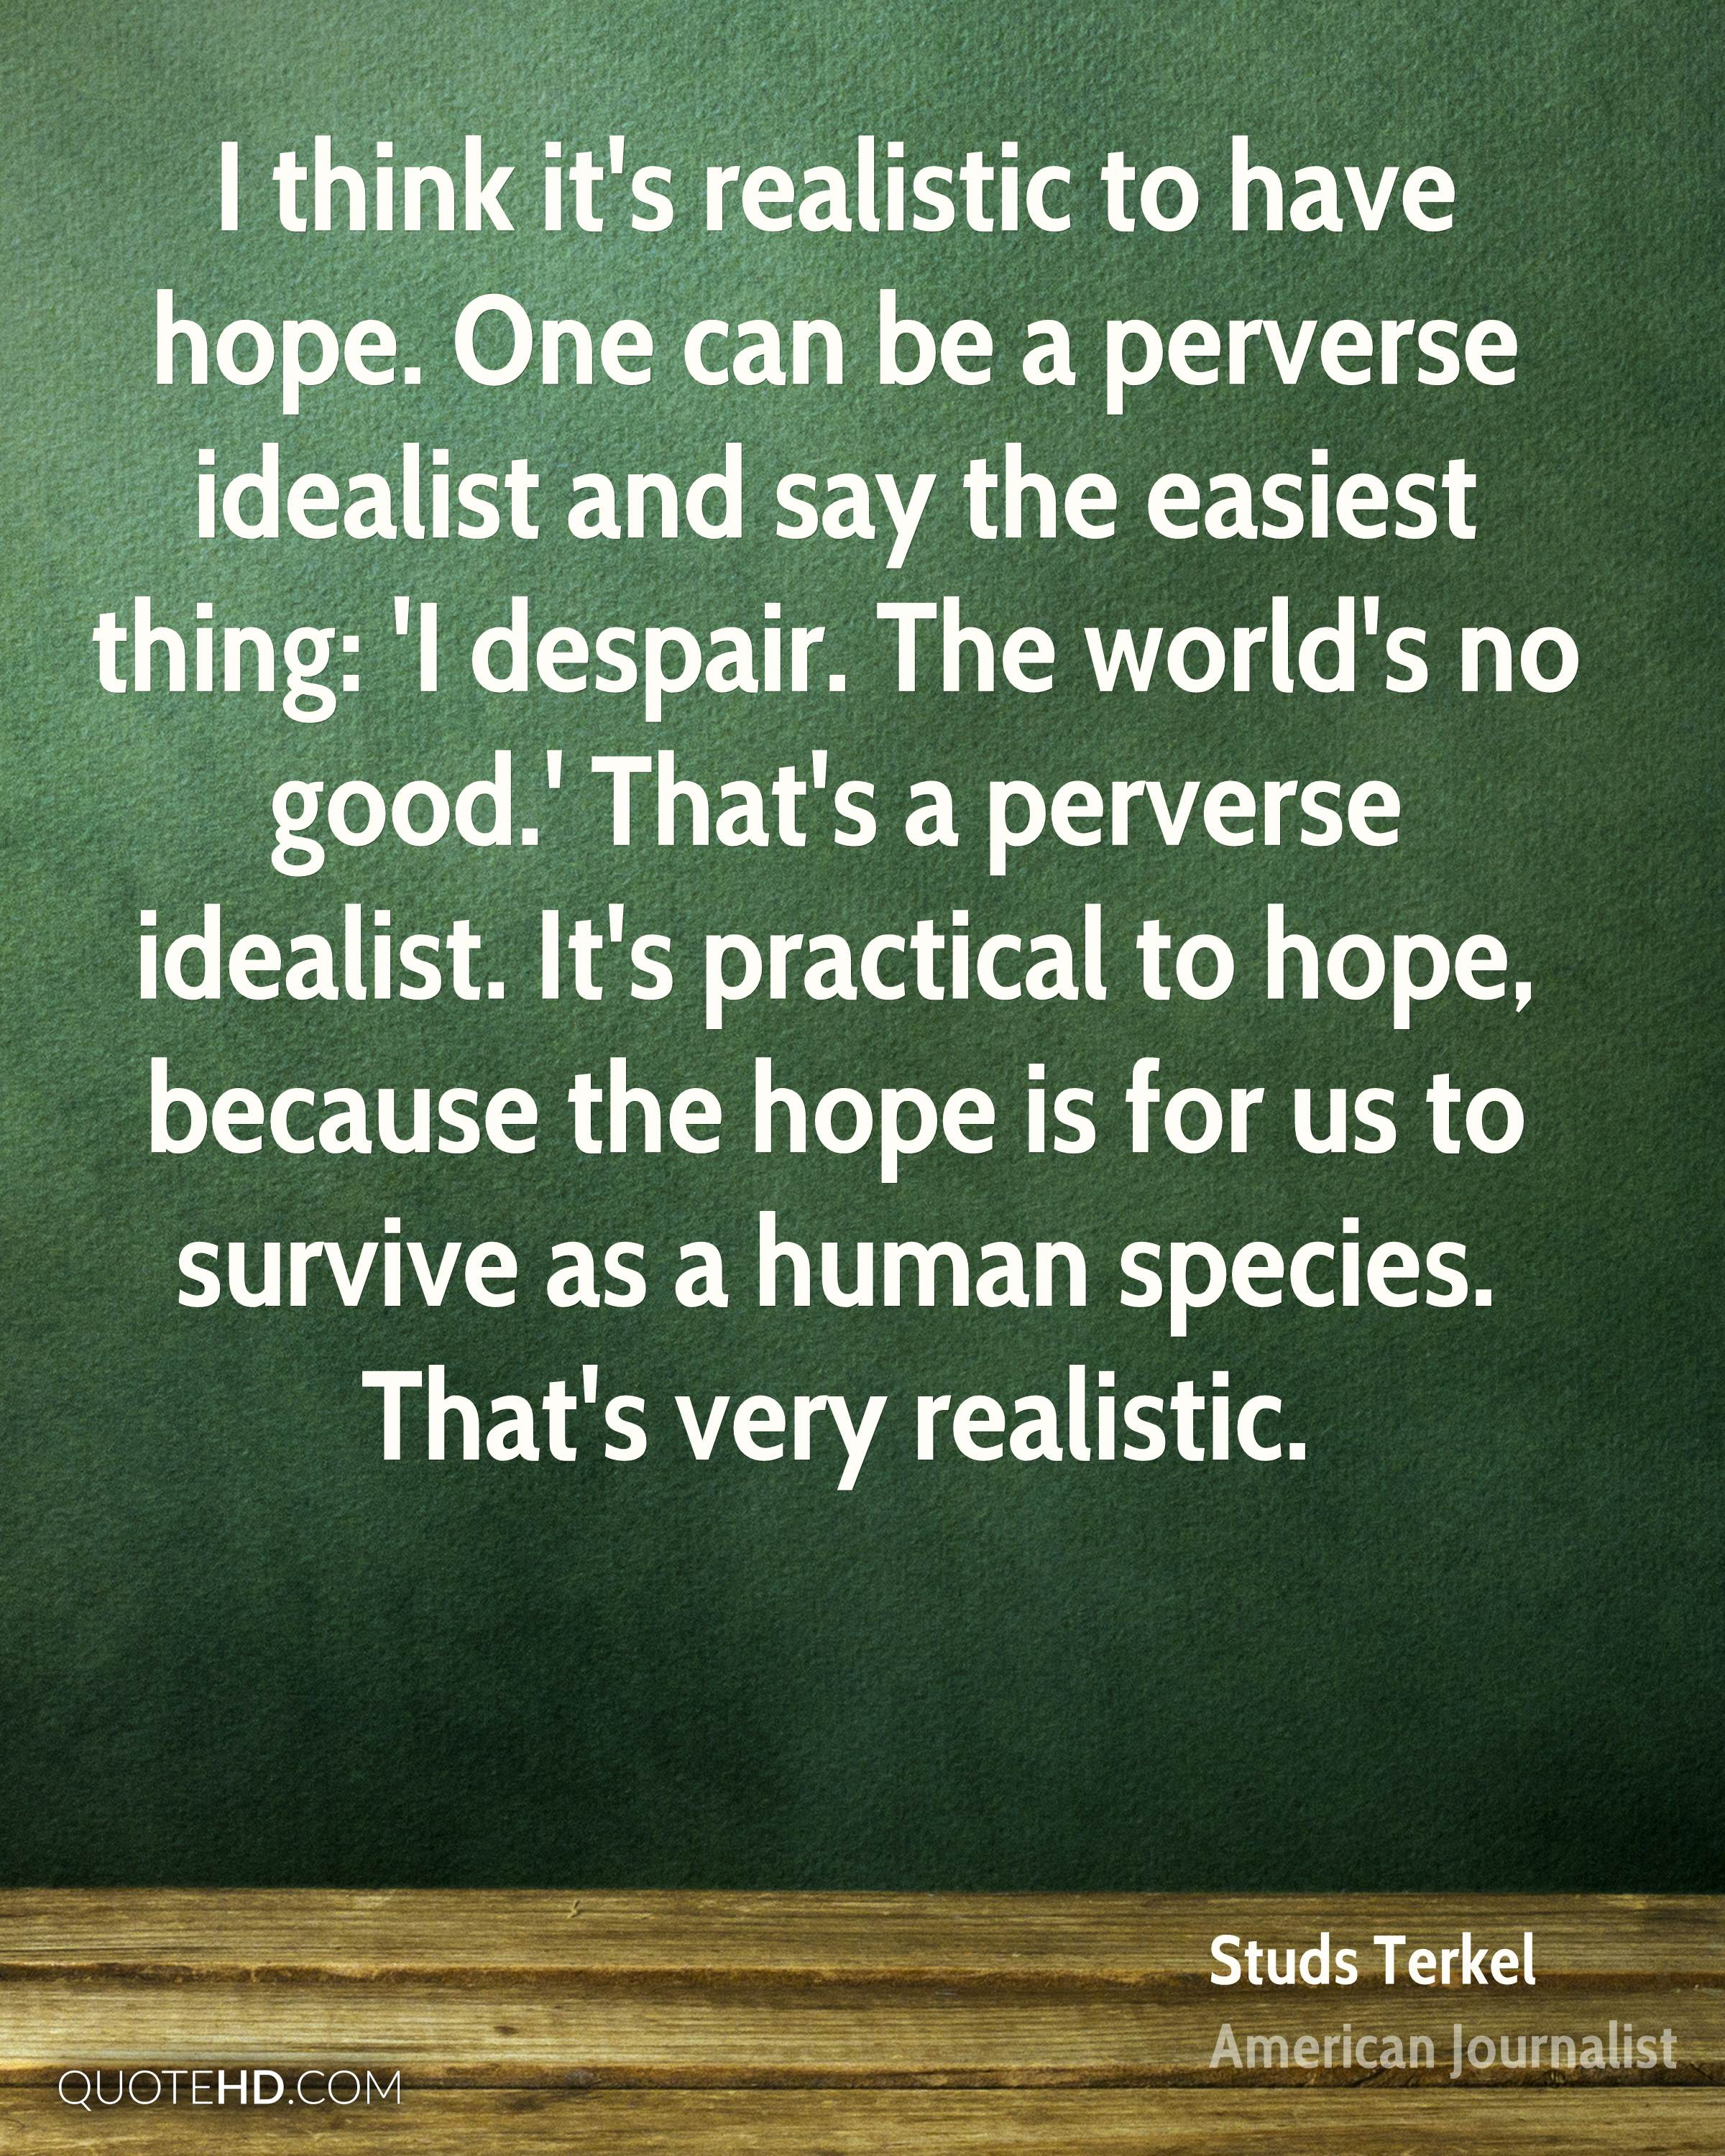 I think it's realistic to have hope. One can be a perverse idealist and say the easiest thing: 'I despair. The world's no good.' That's a perverse idealist. It's practical to hope, because the hope is for us to survive as a human species. That's very realistic.